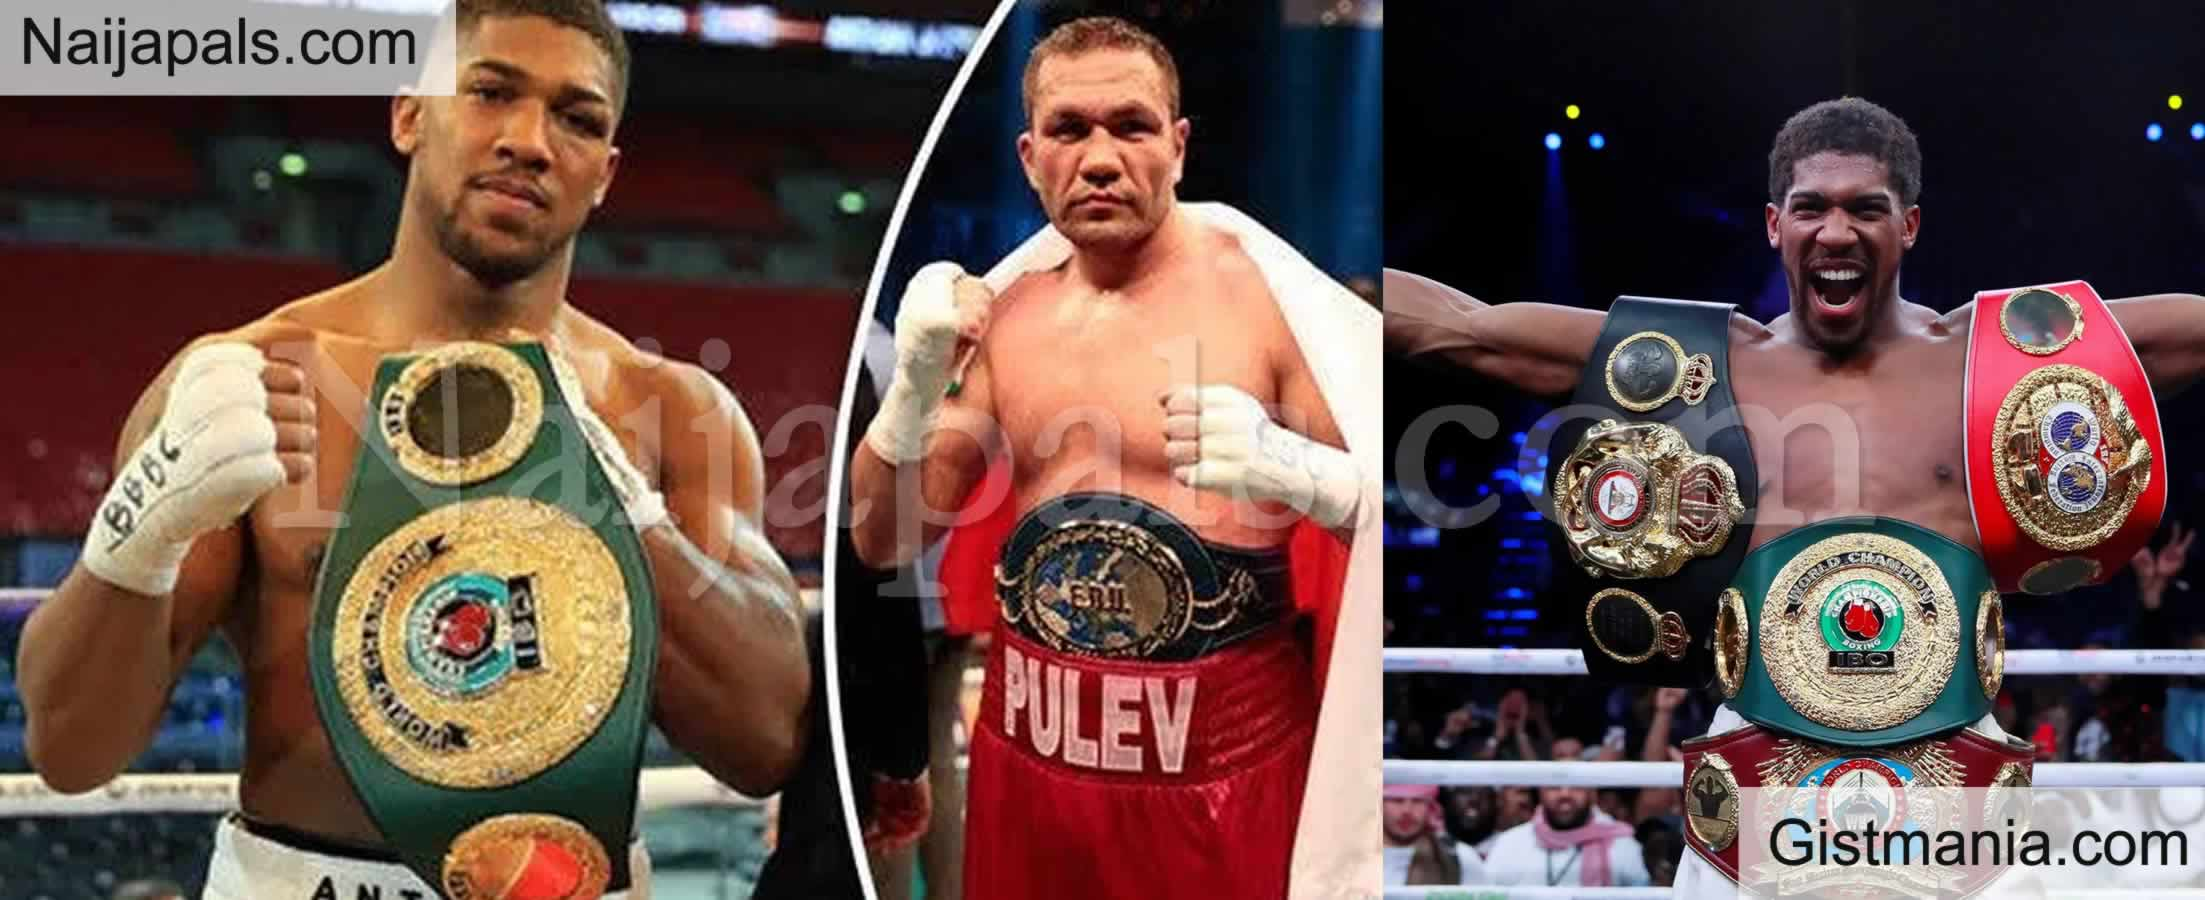 <img alt='.' class='lazyload' data-src='https://img.gistmania.com/emot/news.gif' /> <b>Joshua Sets To Defend World Titles Against Pulev In Front Of 1000 Fans At Wembley Arena</b>